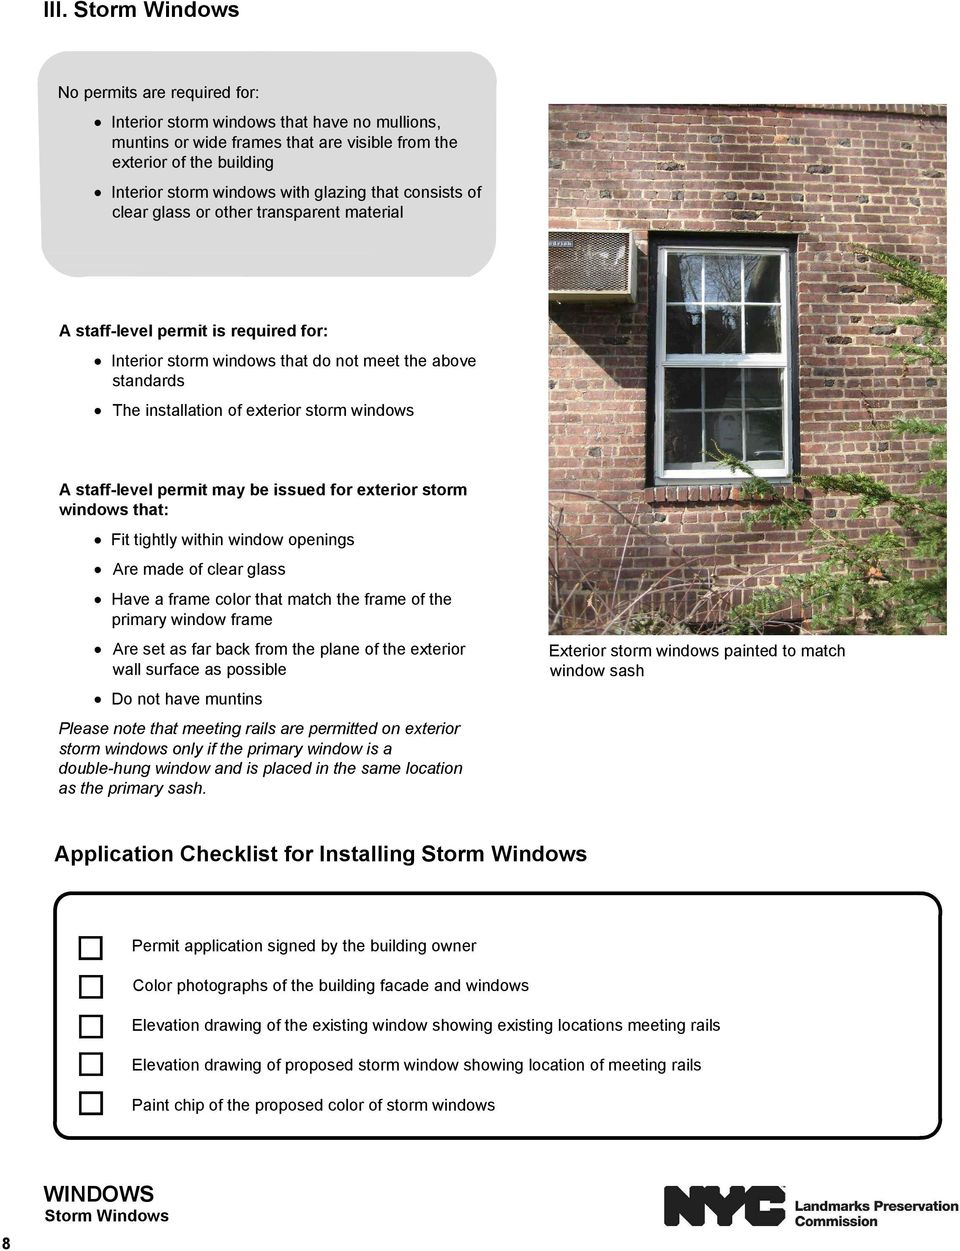 windows A staff-level permit may be issued for exterior storm windows that: Fit tightly within window openings Are made of clear glass Have a frame color that match the frame of the primary window